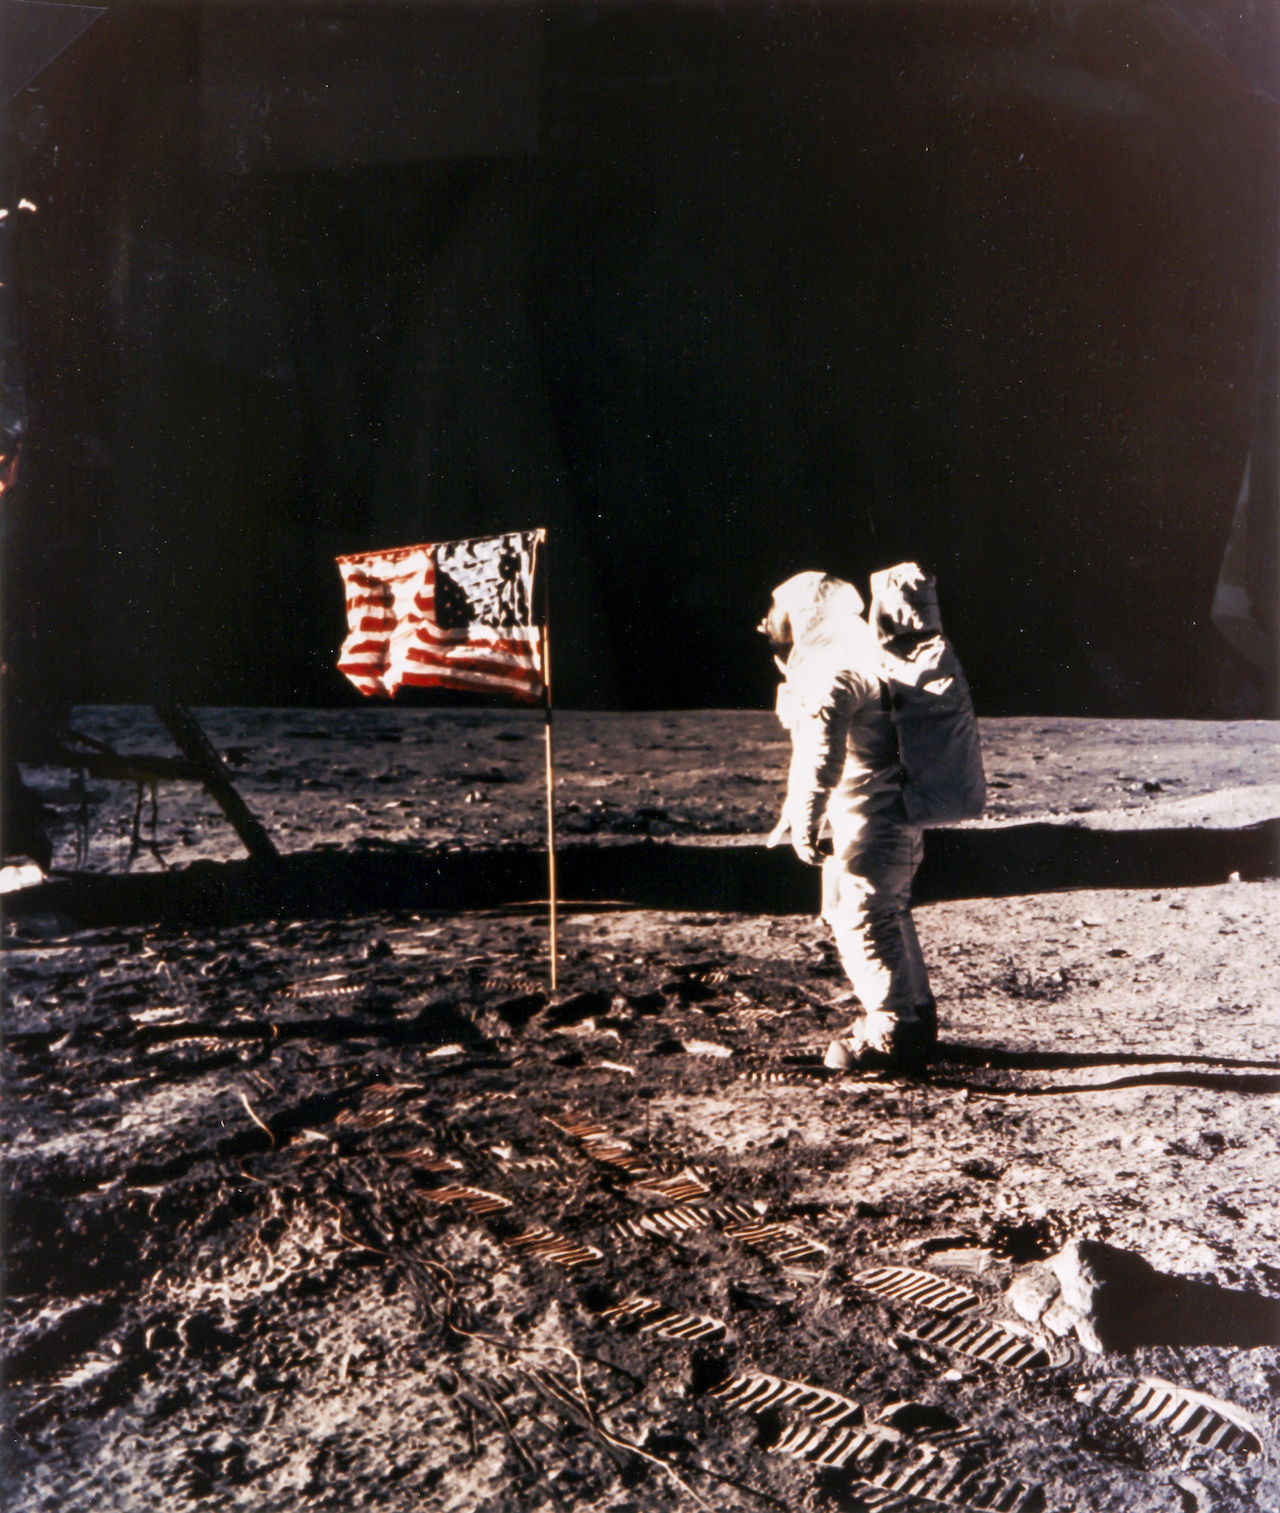 """Neil Armstrong Buzz Aldrin and the American flag on the Sea of Tranquillity, Apollo 11, July 1969 Large-format vintage chromogenic print on fibre-based Kodak paper, borderless, 60 x 51cm, """"A Kodak Paper"""" watermark on verso, NASA HQ caption on separate page, [NASA negative number AS11-40-5874] On the windless plain Aldrin saluted the American flag, stiffened with wire so it would """"wave"""". Illustrated: Moon p.194-195 Est. £5,000-7,000 Reproduction, © Bloomsbury Auctions"""